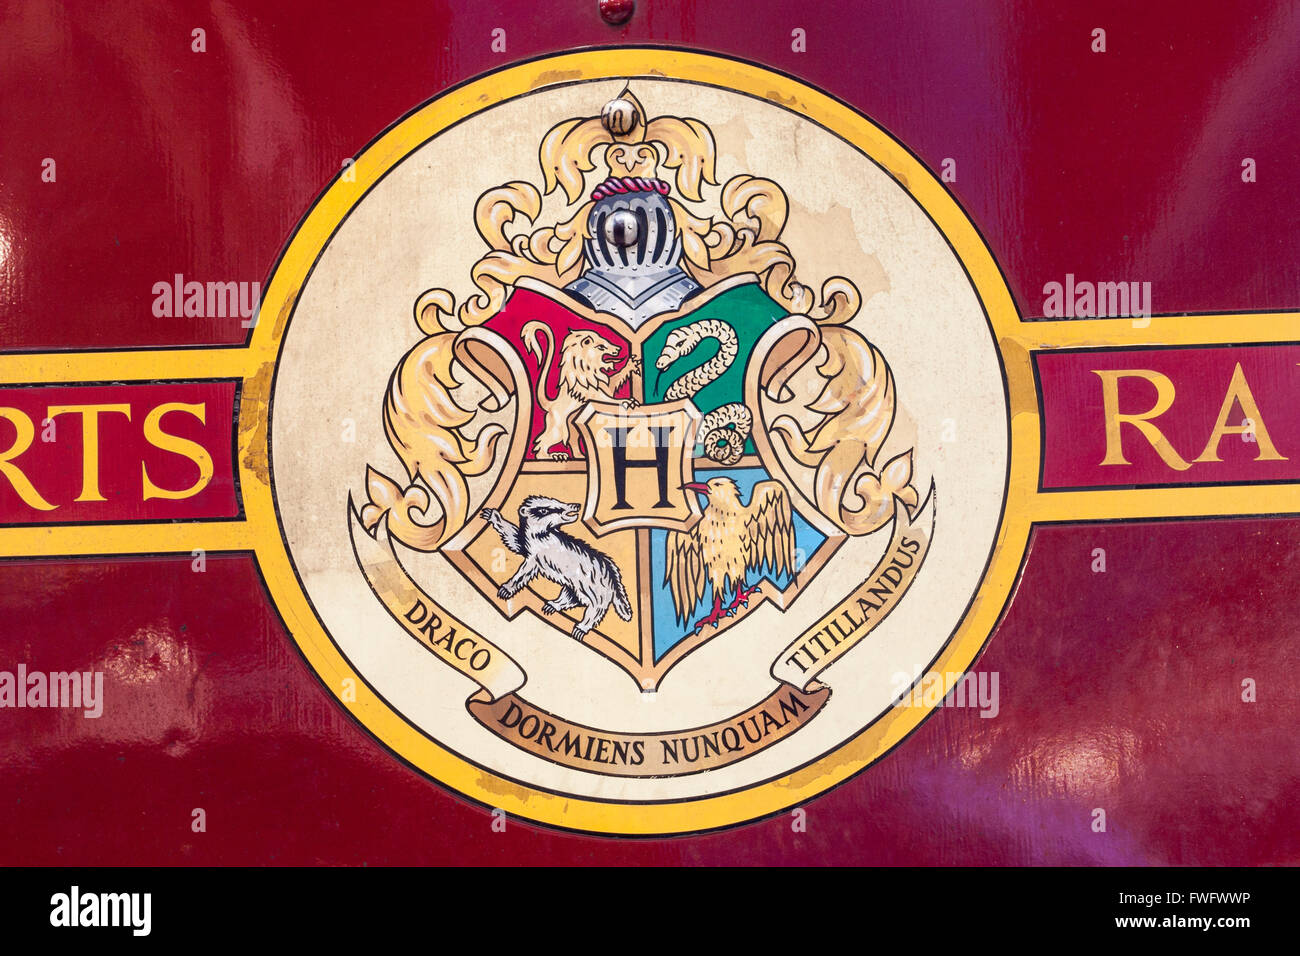 Hogwarts Latin motto on Hogwarts Express, the train used in Harry Potter films. - Stock Image